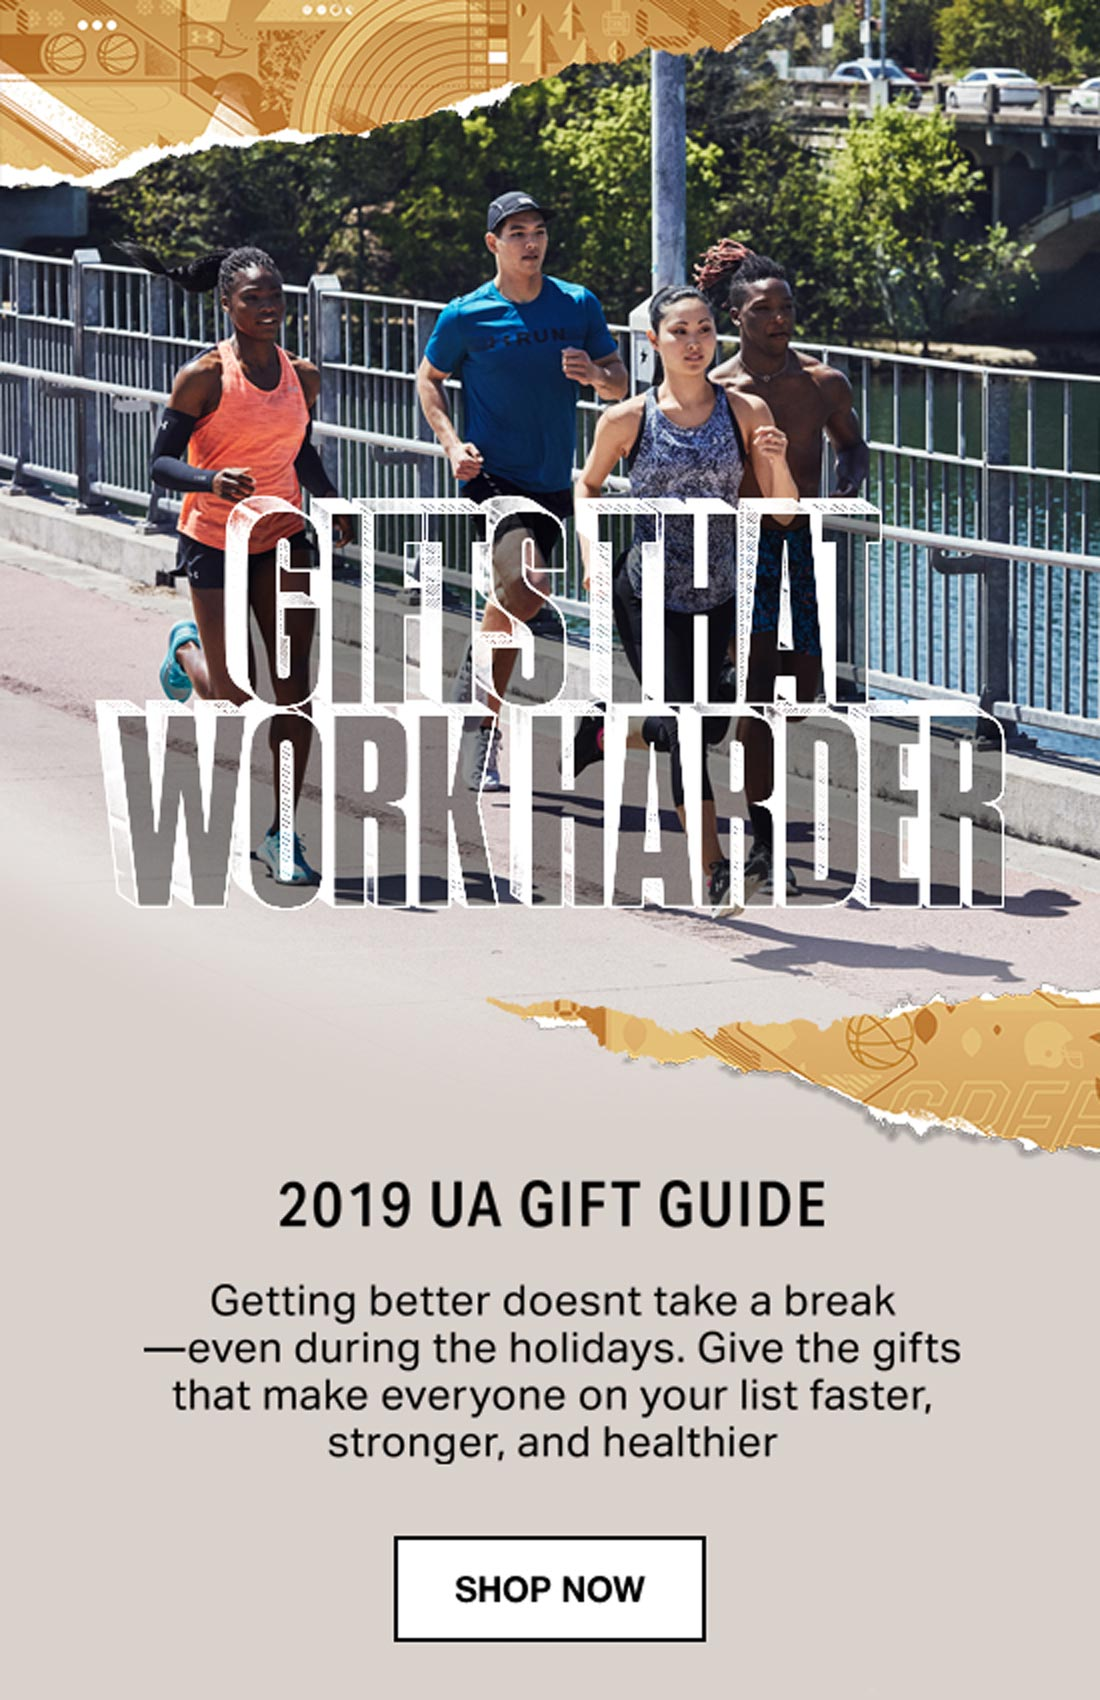 GIFTS THAT WORK HARDER - 2019 UA GIFT GUIDE - Getting better doesnt take a break—even during the holidays. Give the gifts that make everyone on your list faster, stronger, and healthier - SHOP NOW